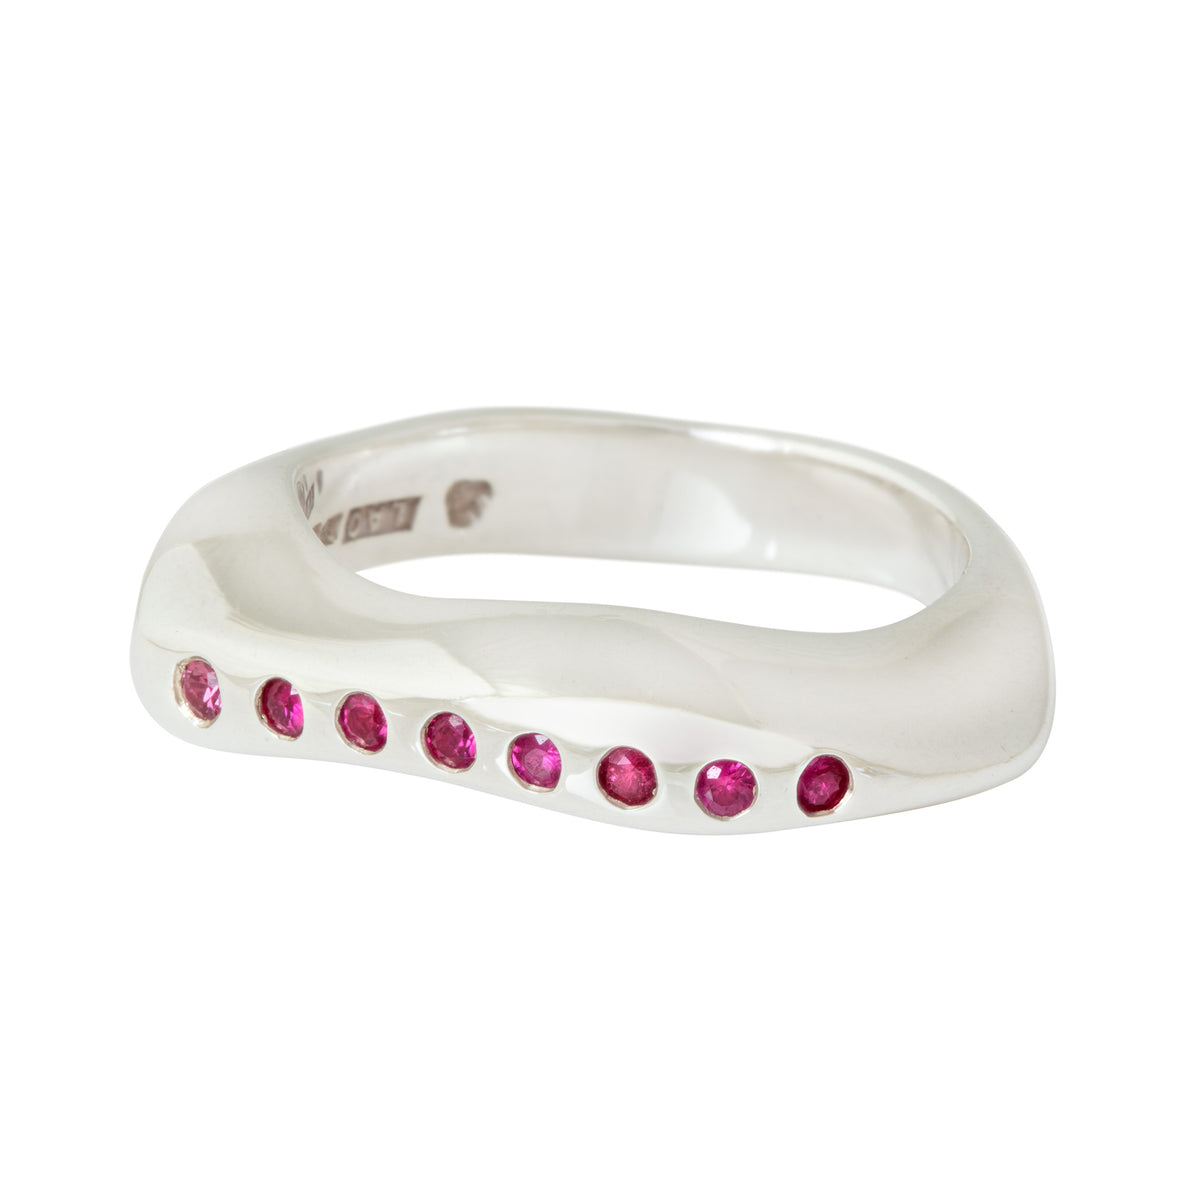 CELEBRATION RINGS Mountain Ring with Rubies in Silver